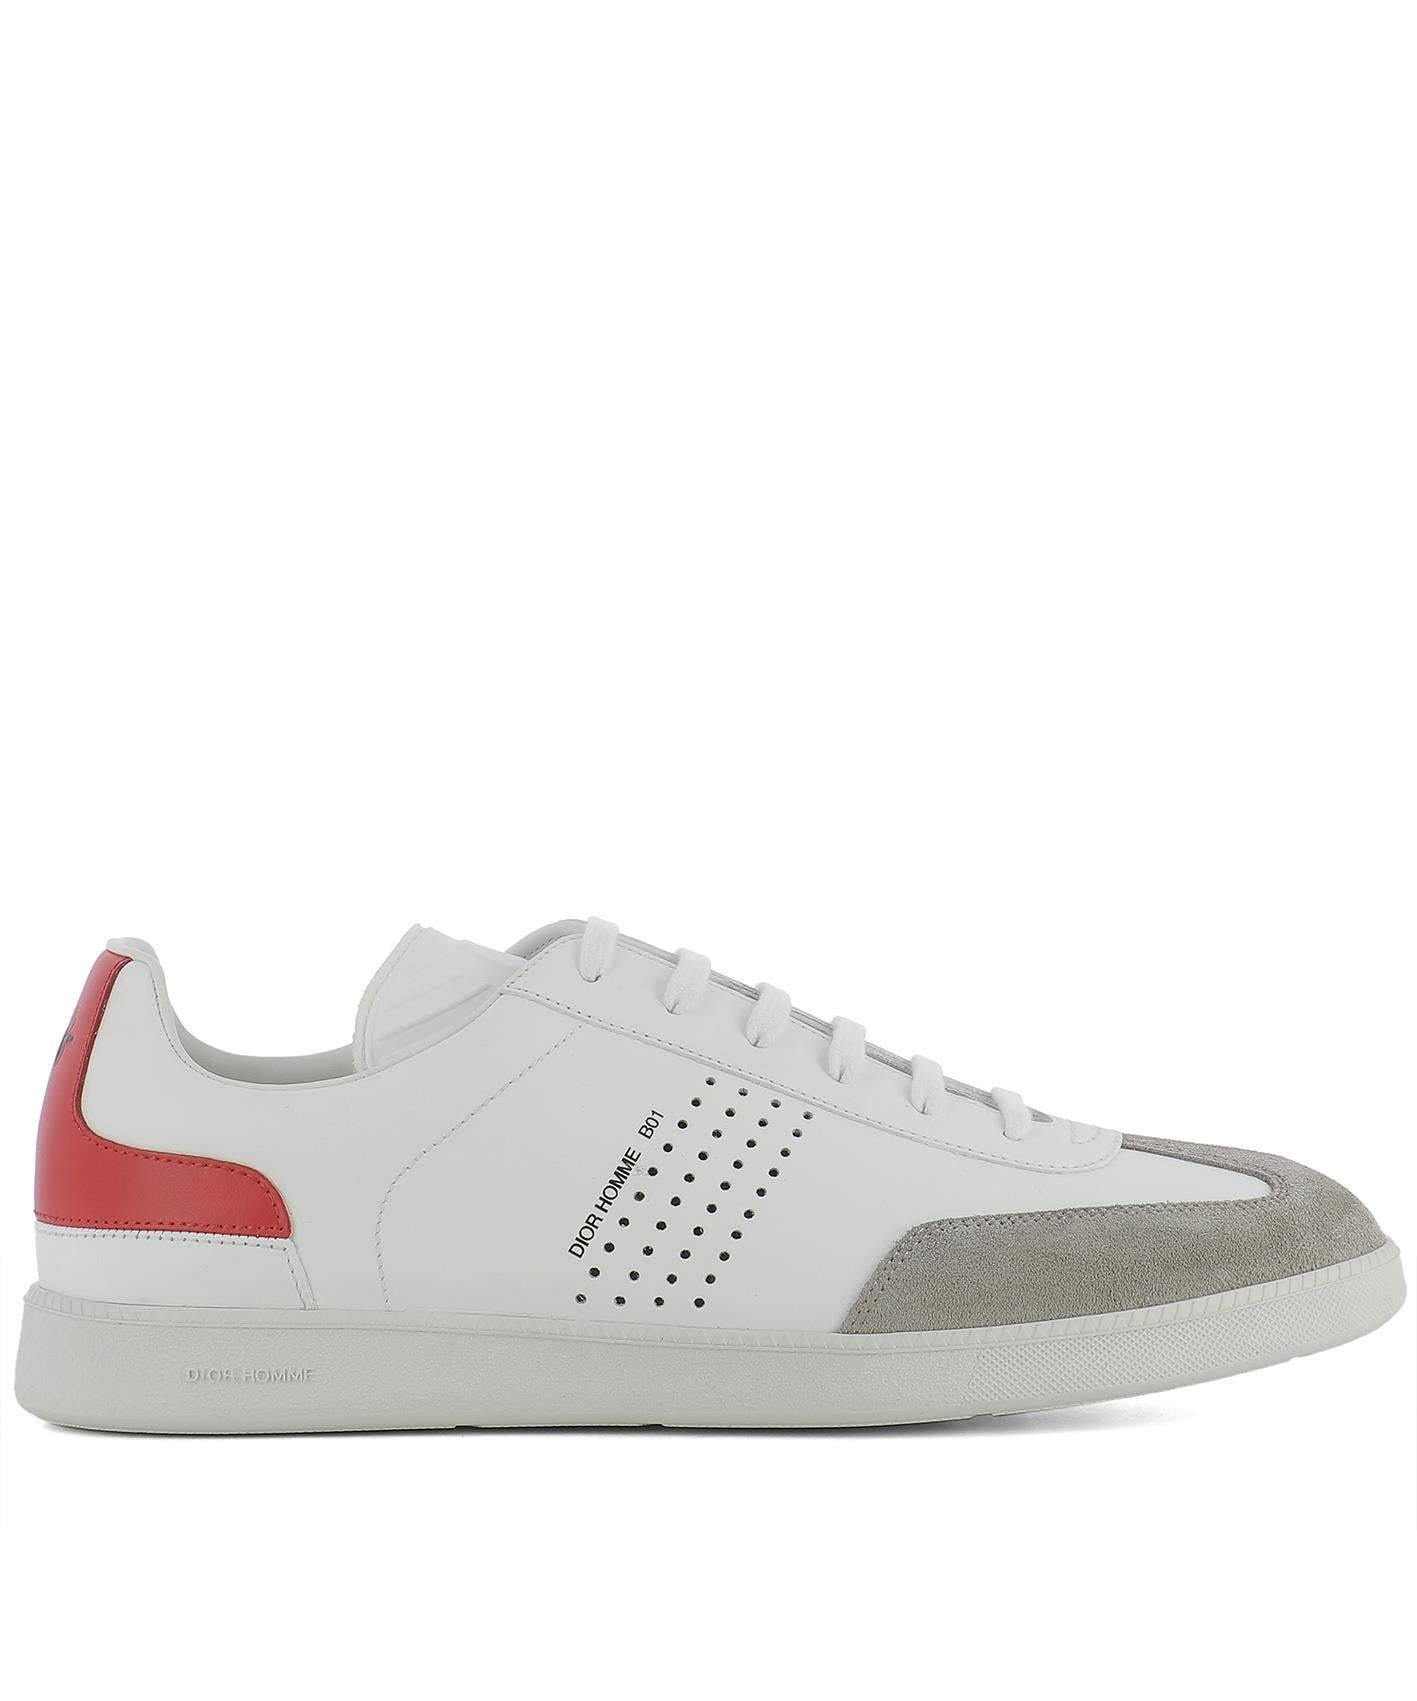 Dior Homme  DIOR HOMME CD SNEAKERS